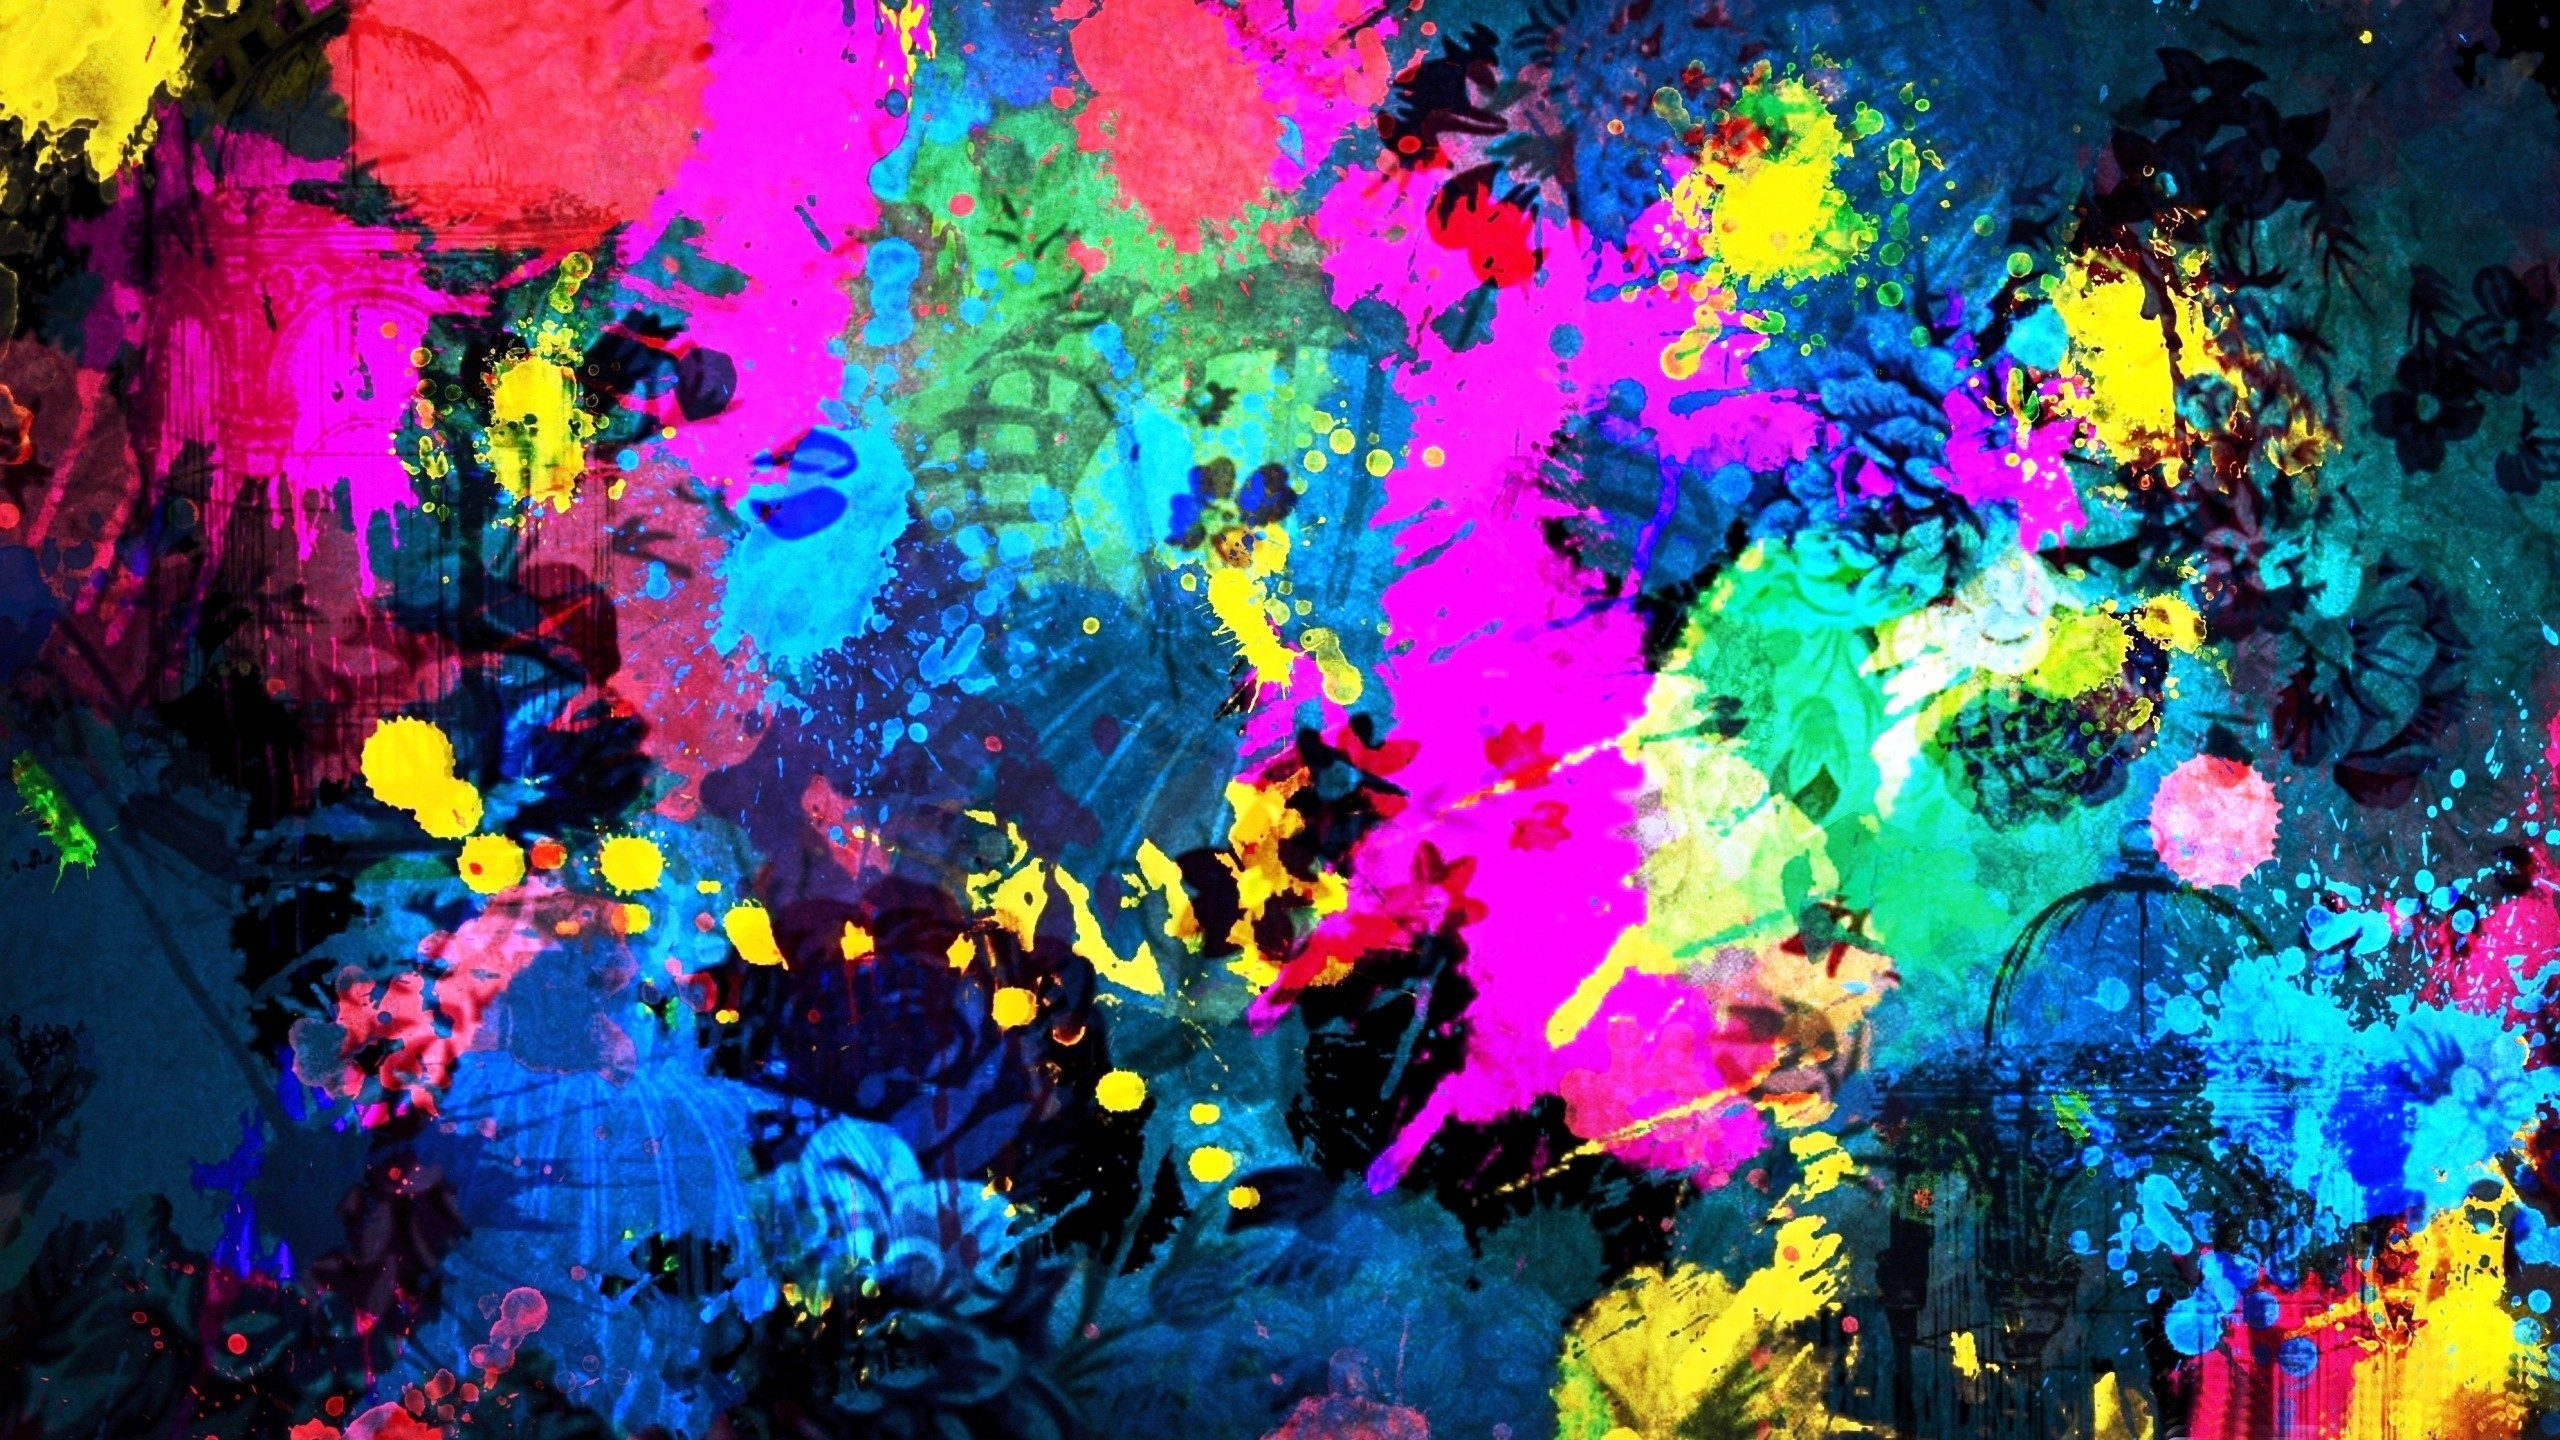 Abstract Art Wallpaper Hd 65 Images